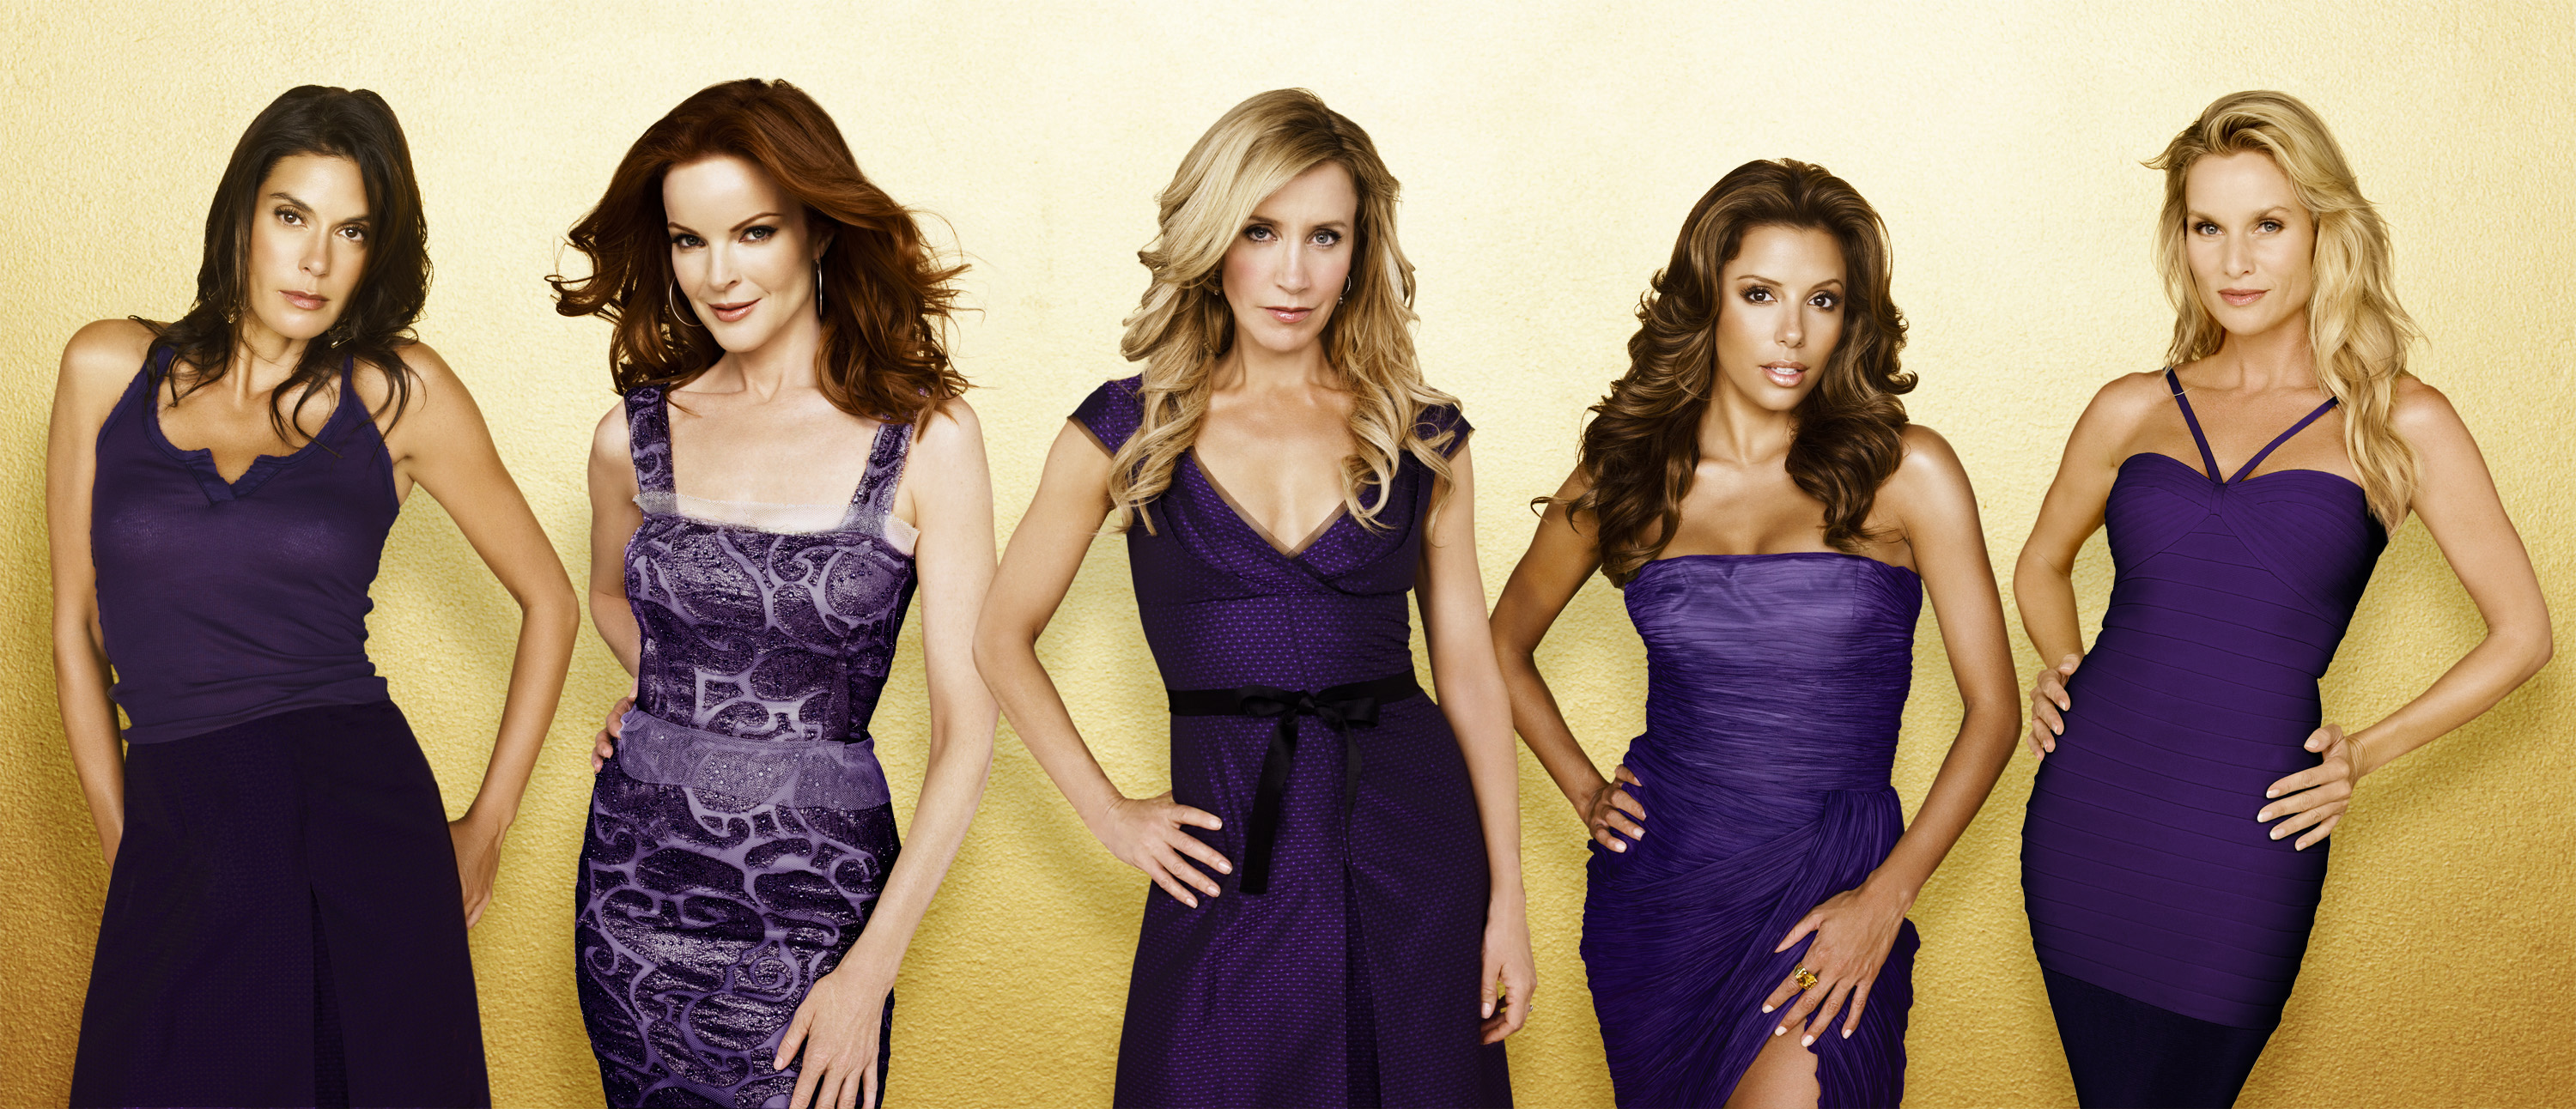 desperate housewives cast drama